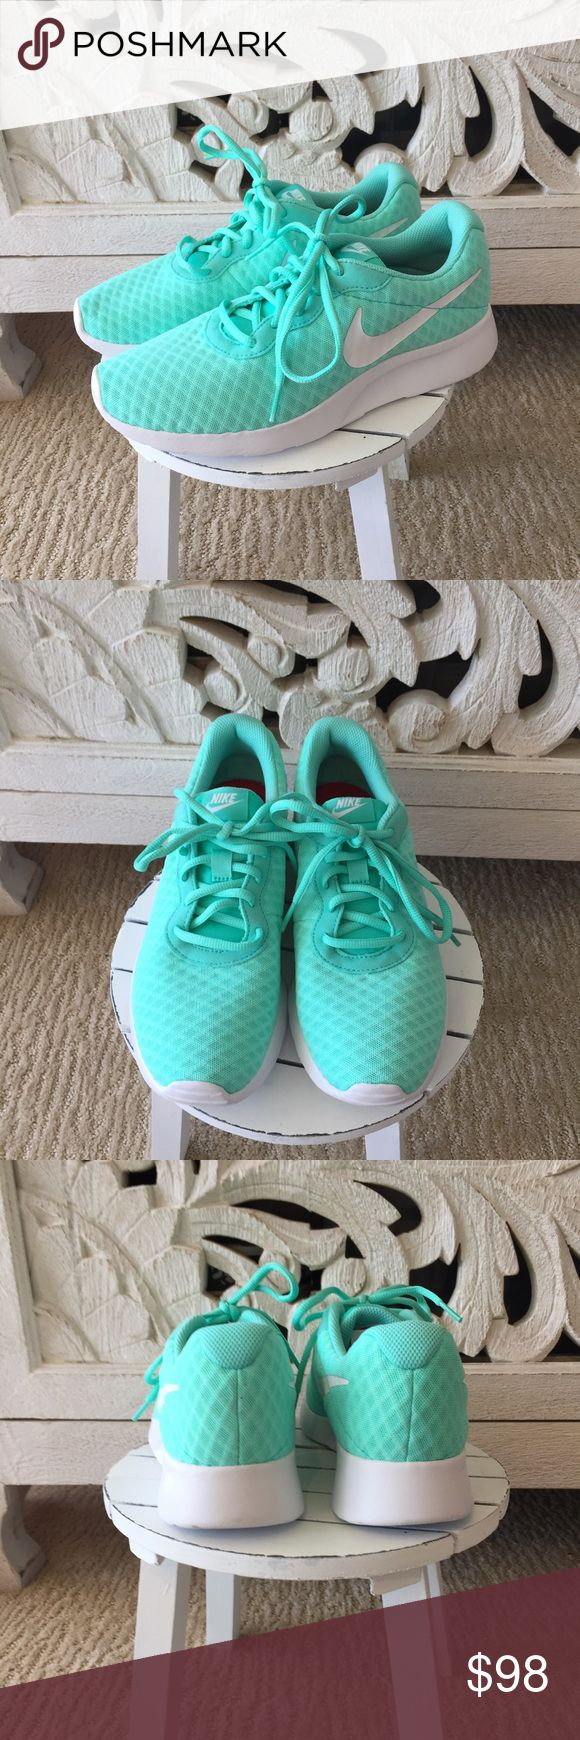 Tiffany Blue Nike Shoes Tiffany Blue Nike Shoes. Must have sneakers!!! Get them before they're gone, one left! Brand new. Nike Shoes Sneakers